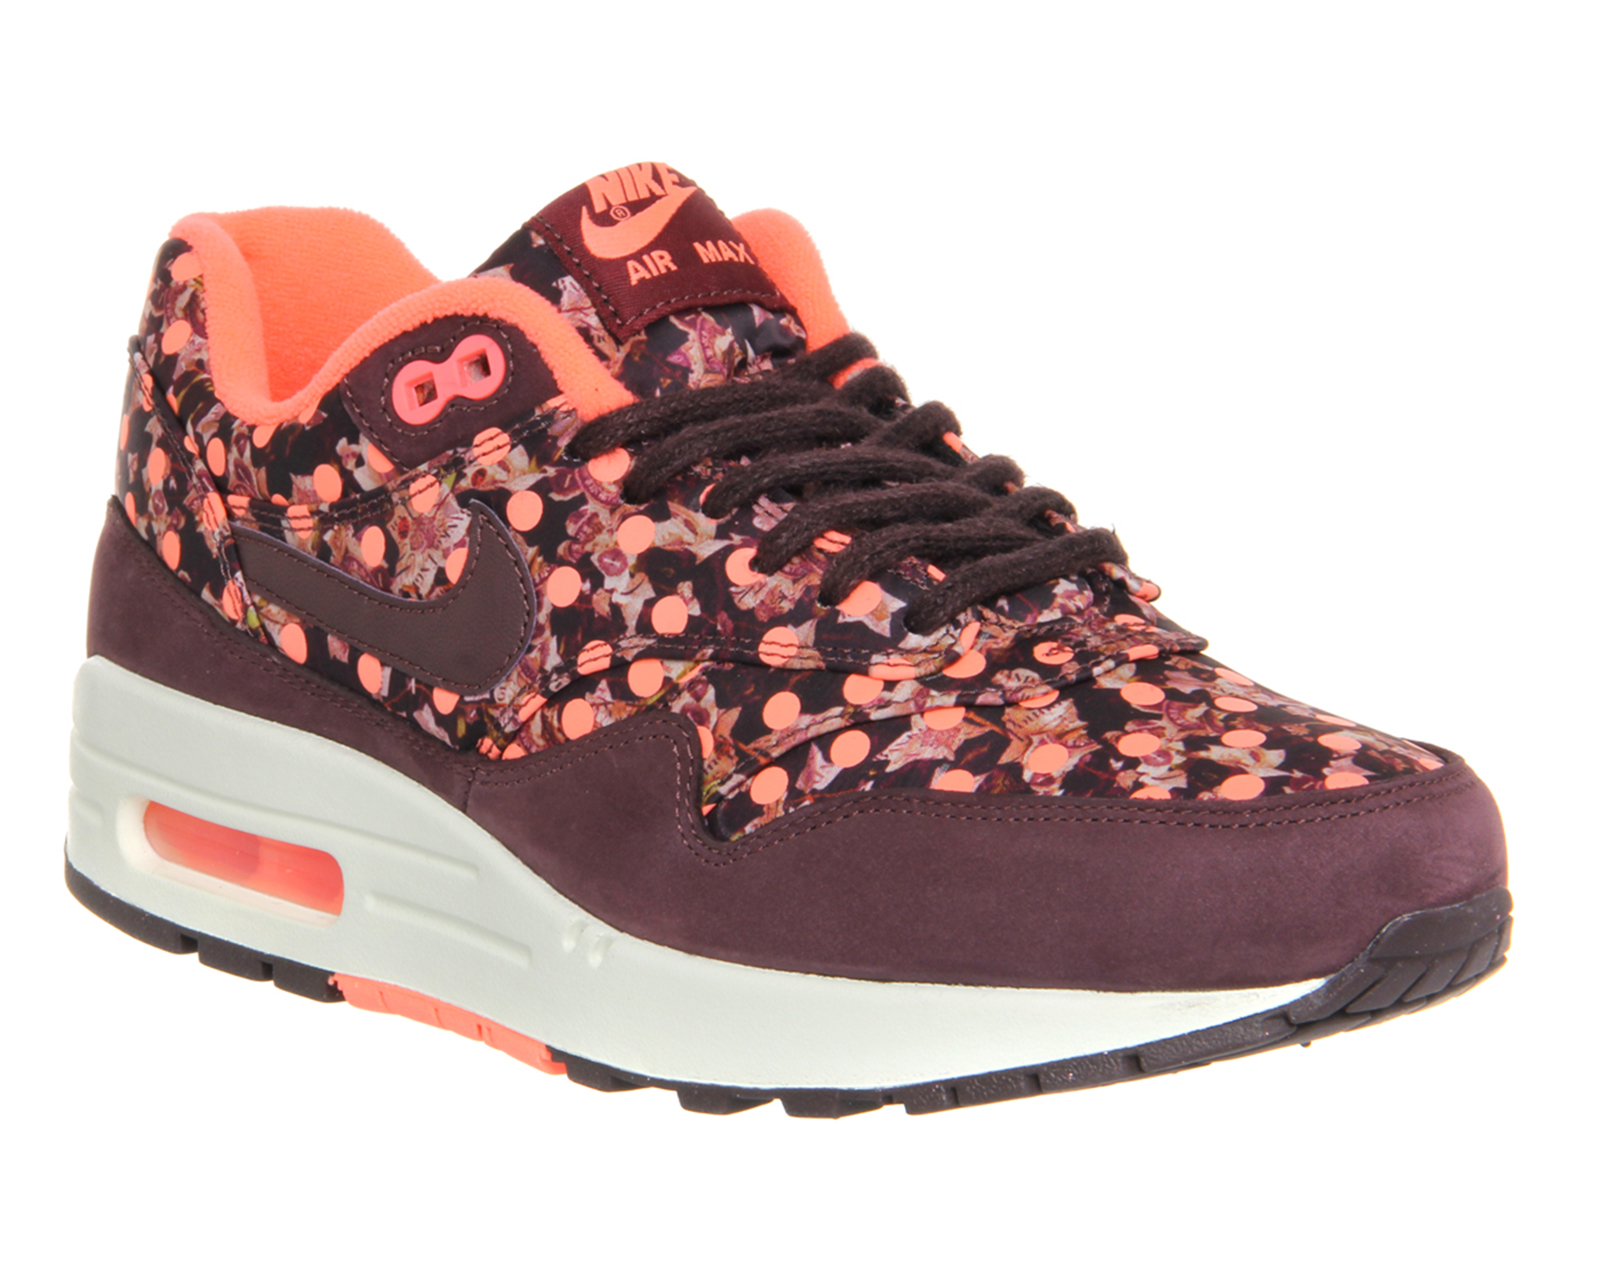 new concept 501b1 07800 Nike Air Max 1 (l) Liberty Deep Burgundy Bright Mango - junior